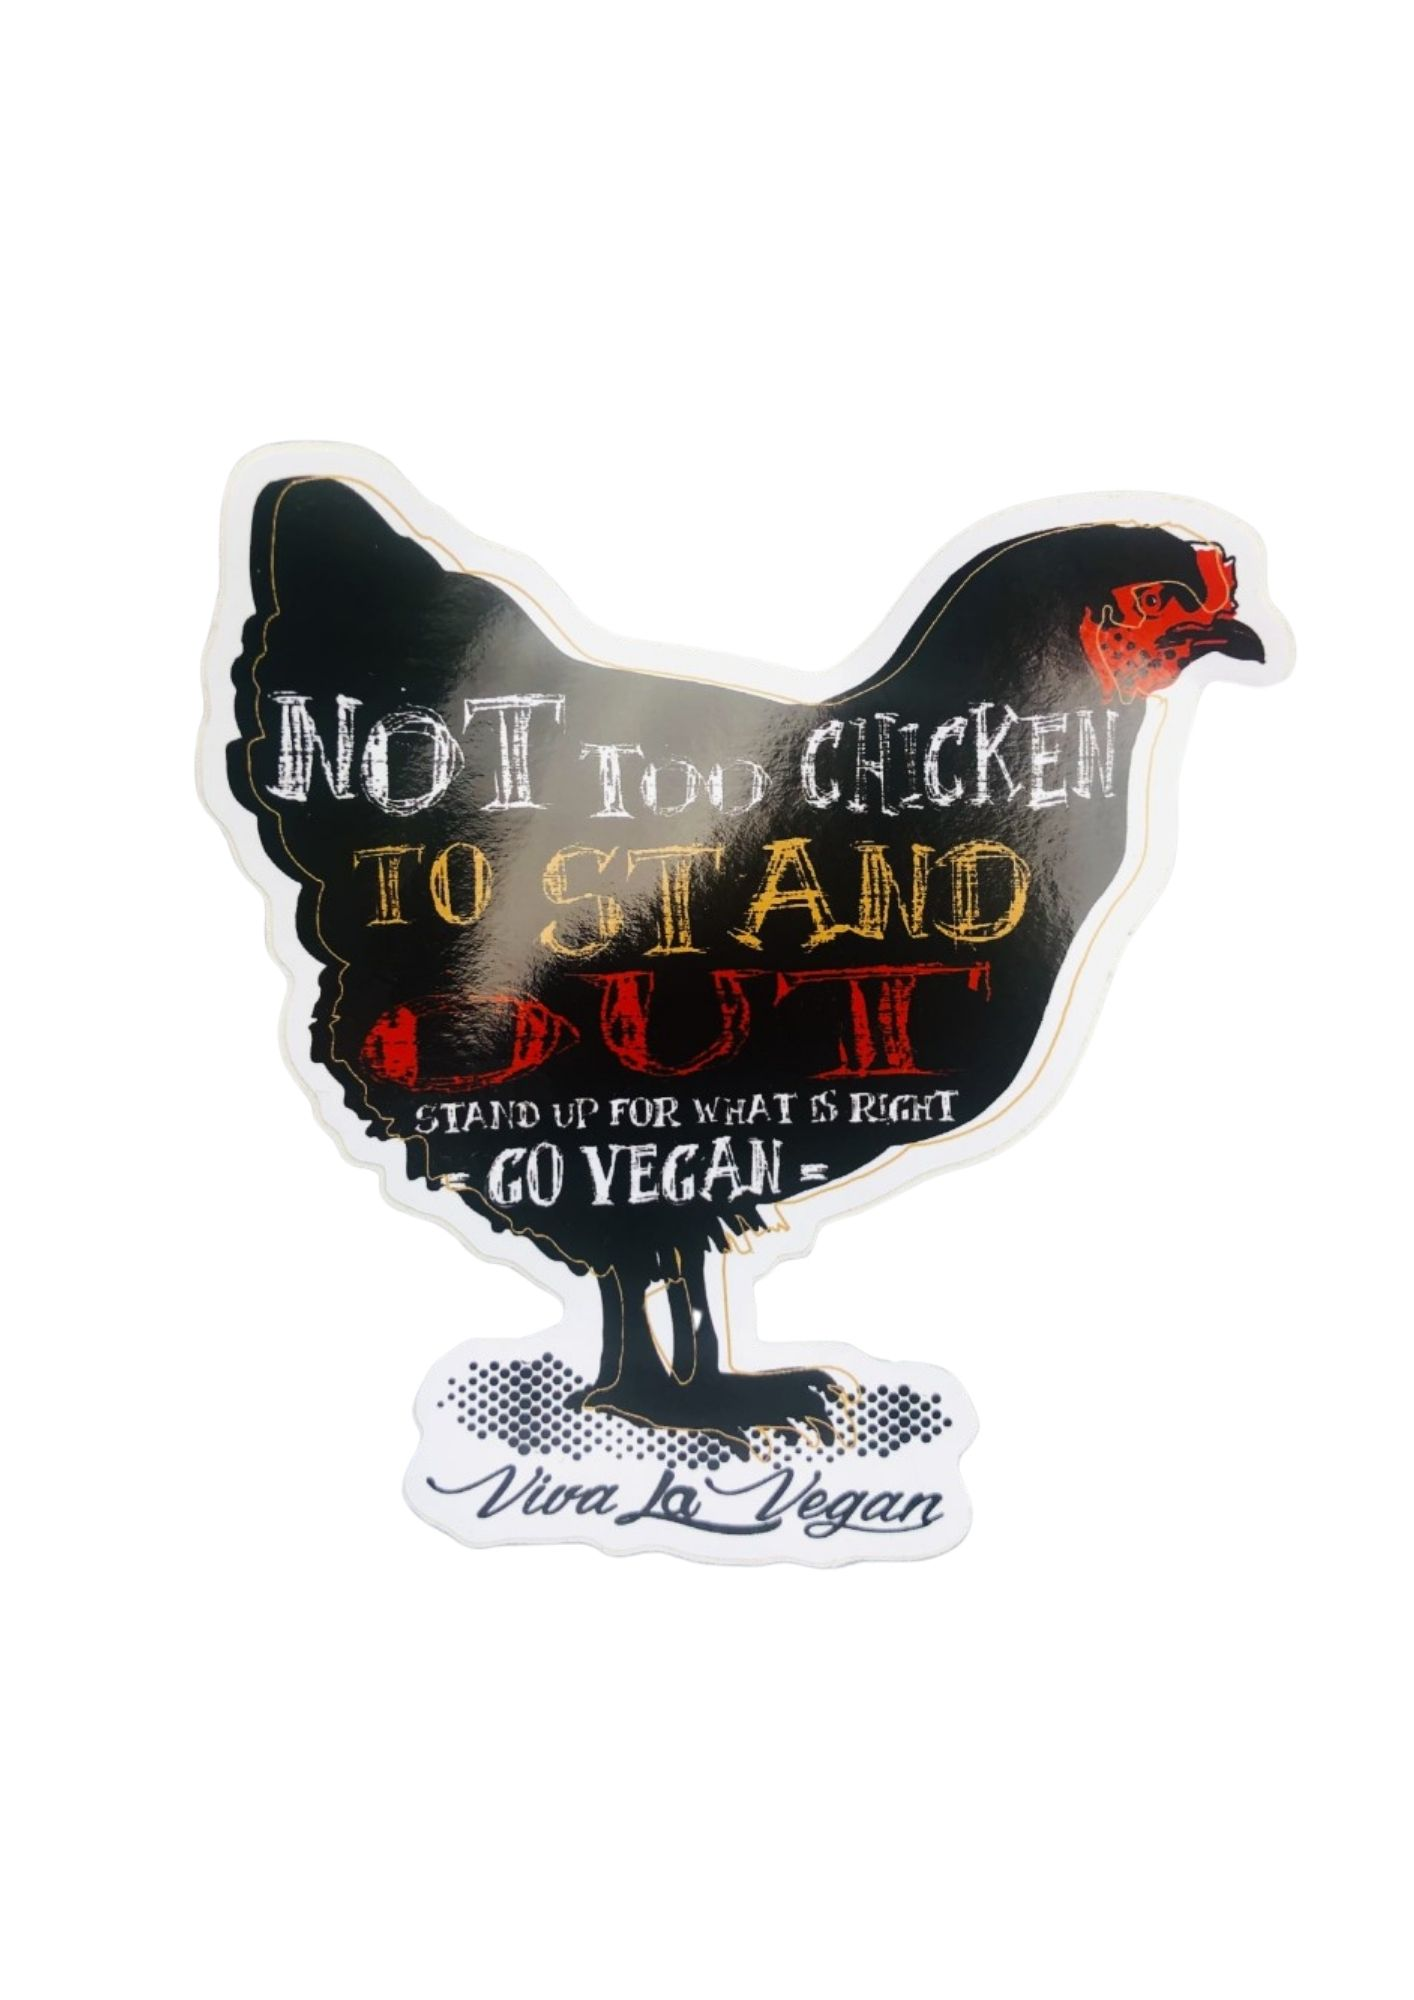 Vegan sticker - Not To Chicken To Stand Out by eco ethical brand Viva la Vegan